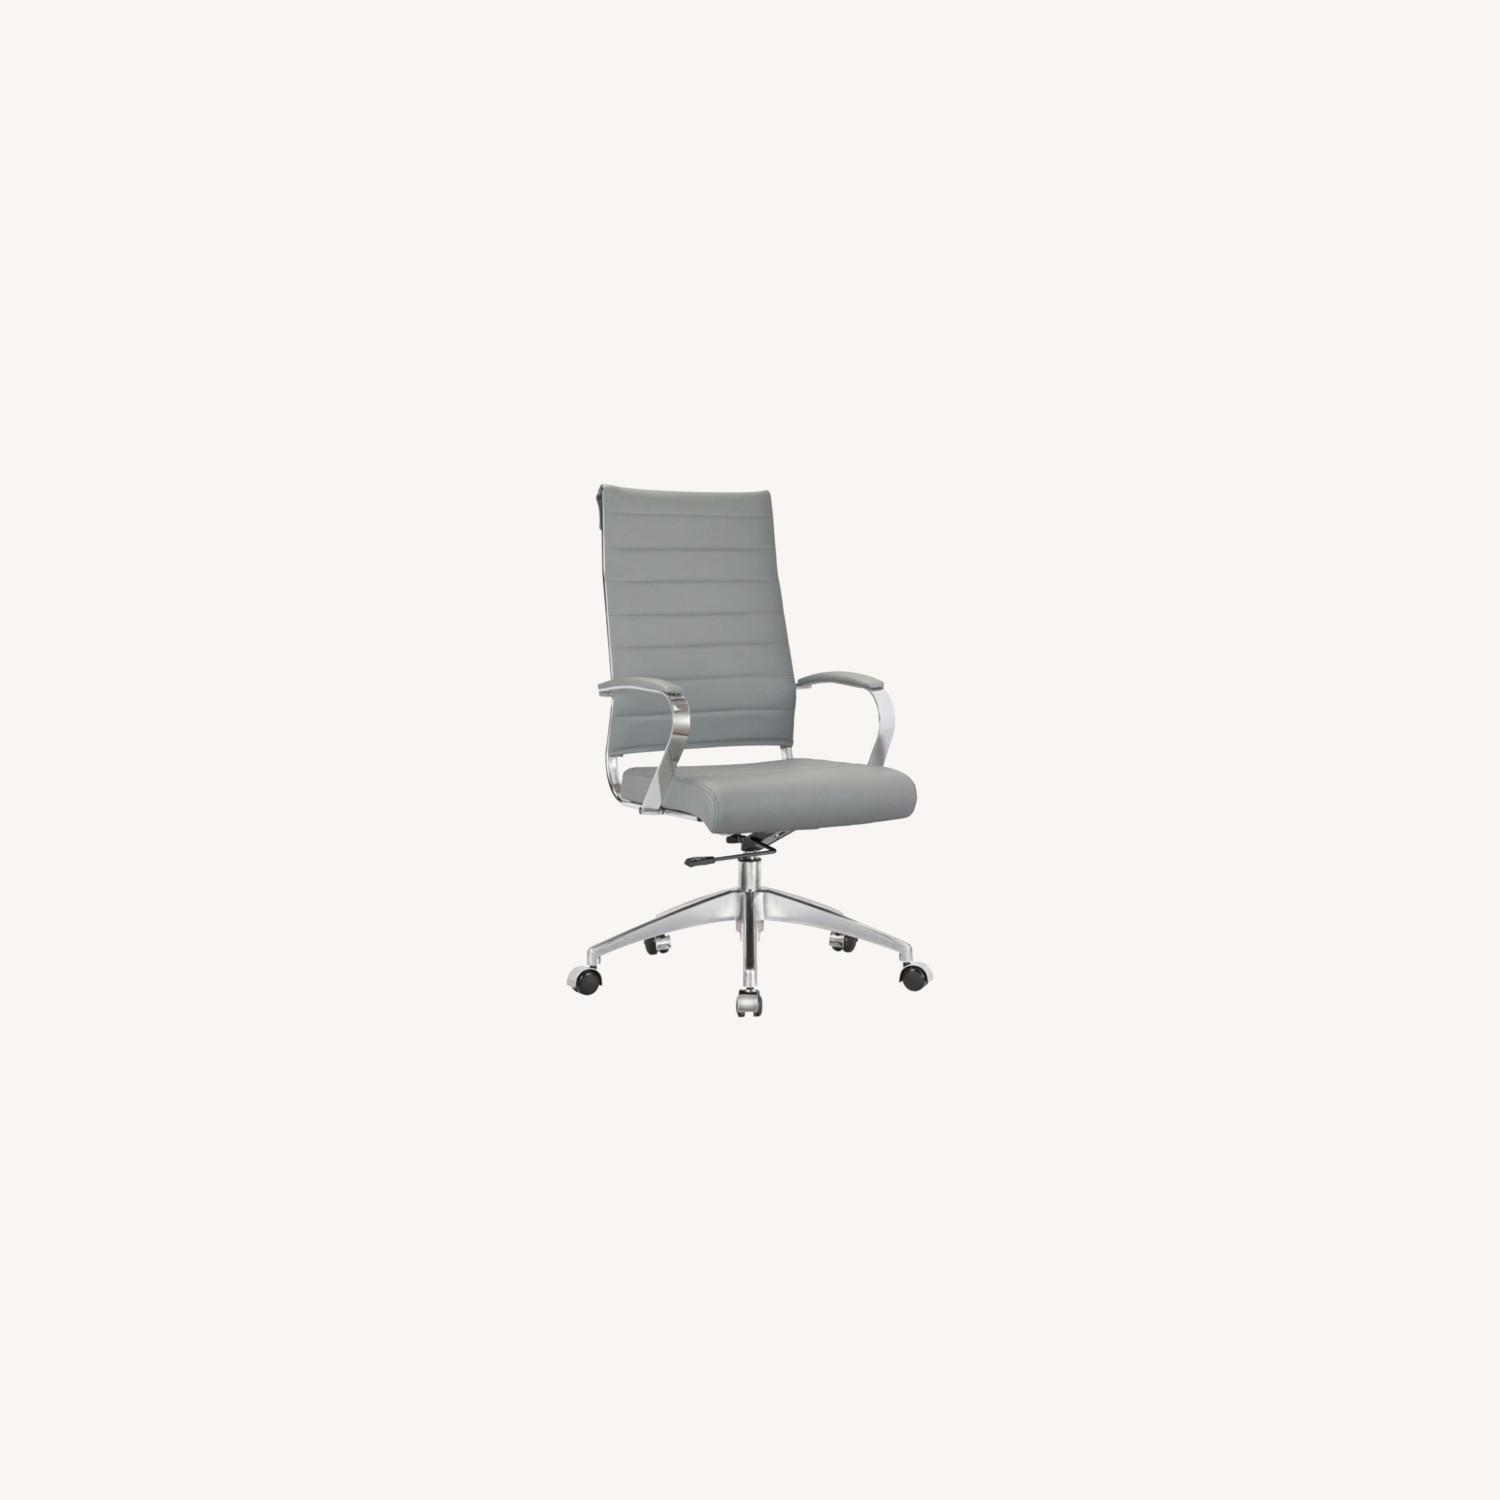 Office Chair W/ High Back Seat In Grey Leather - image-3